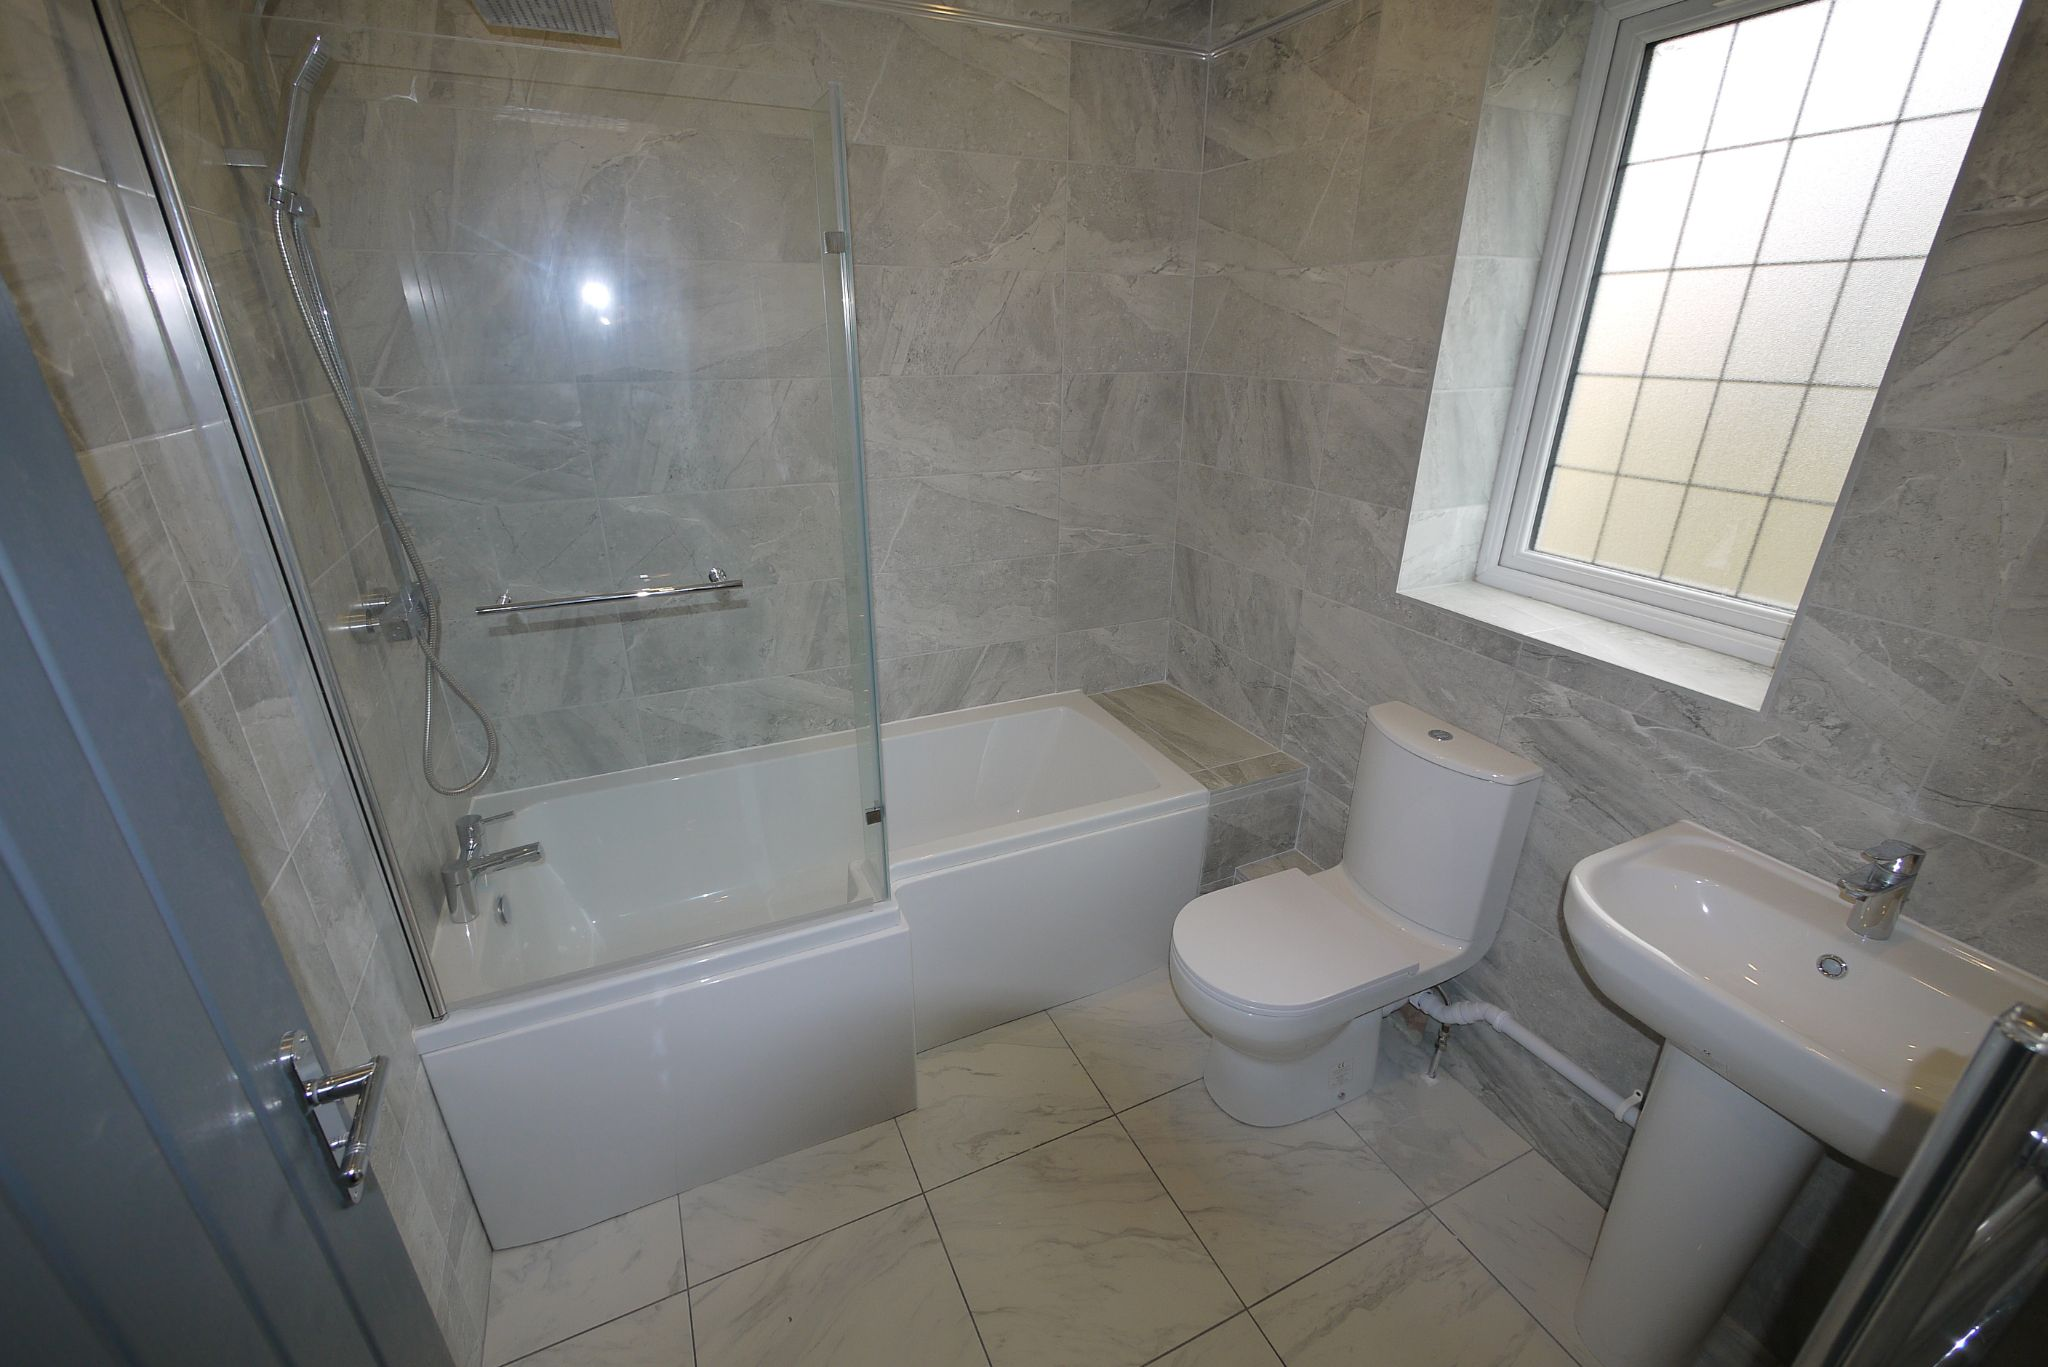 4 bedroom detached house SSTC in Brighouse - Photograph 10.